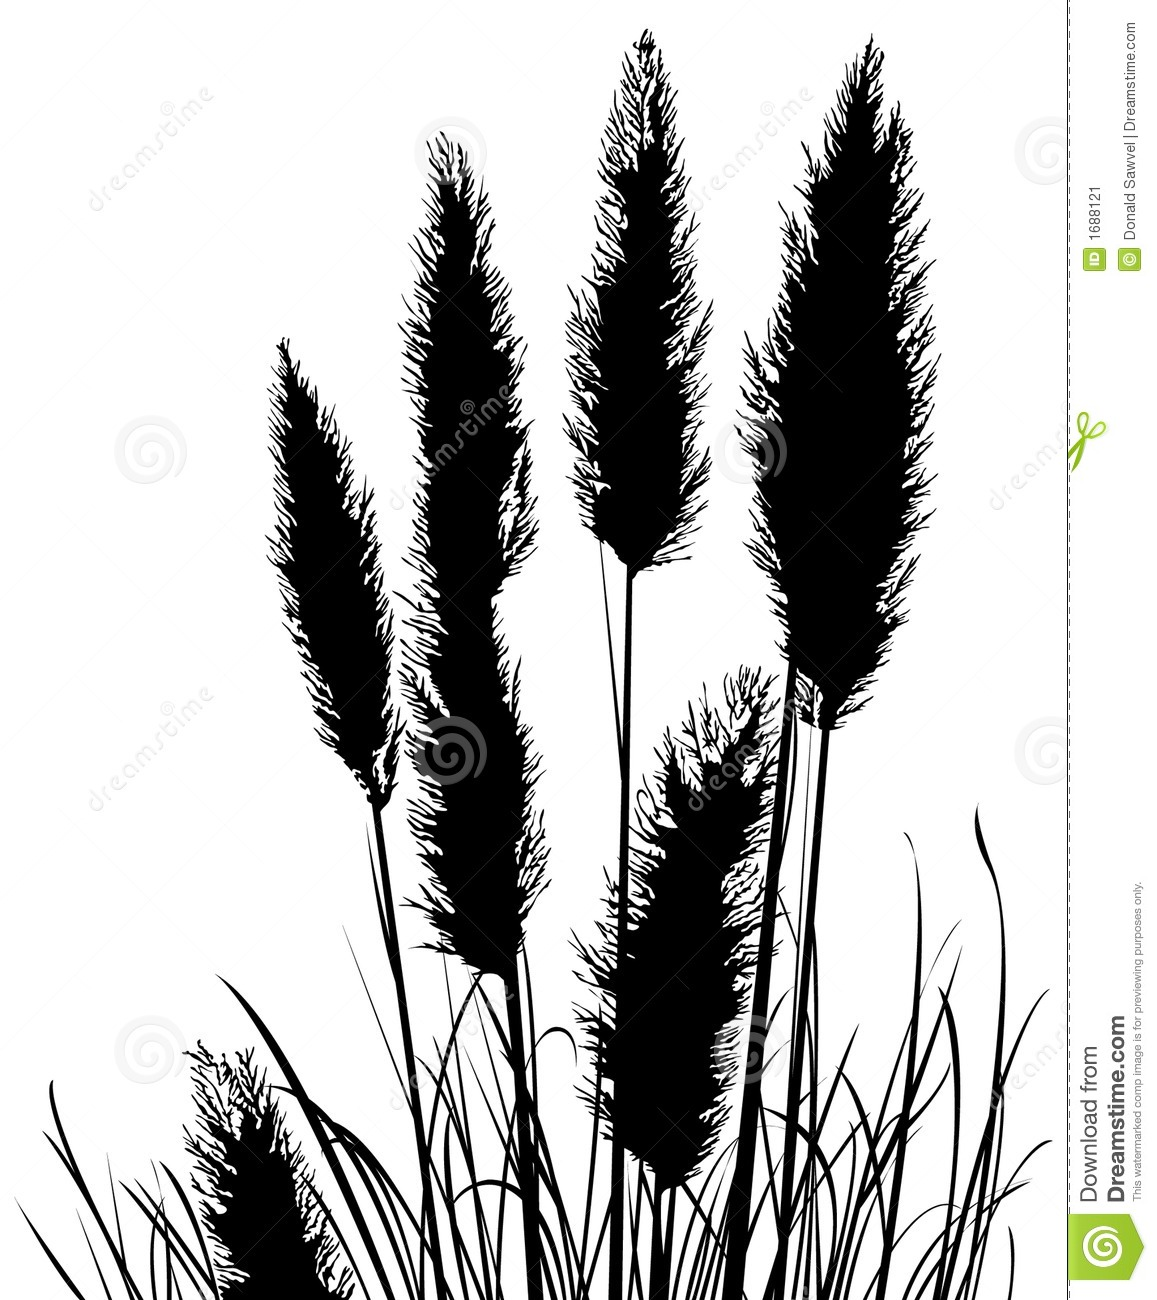 Pampas Grass Silhouette Stock Vector Illustration Of